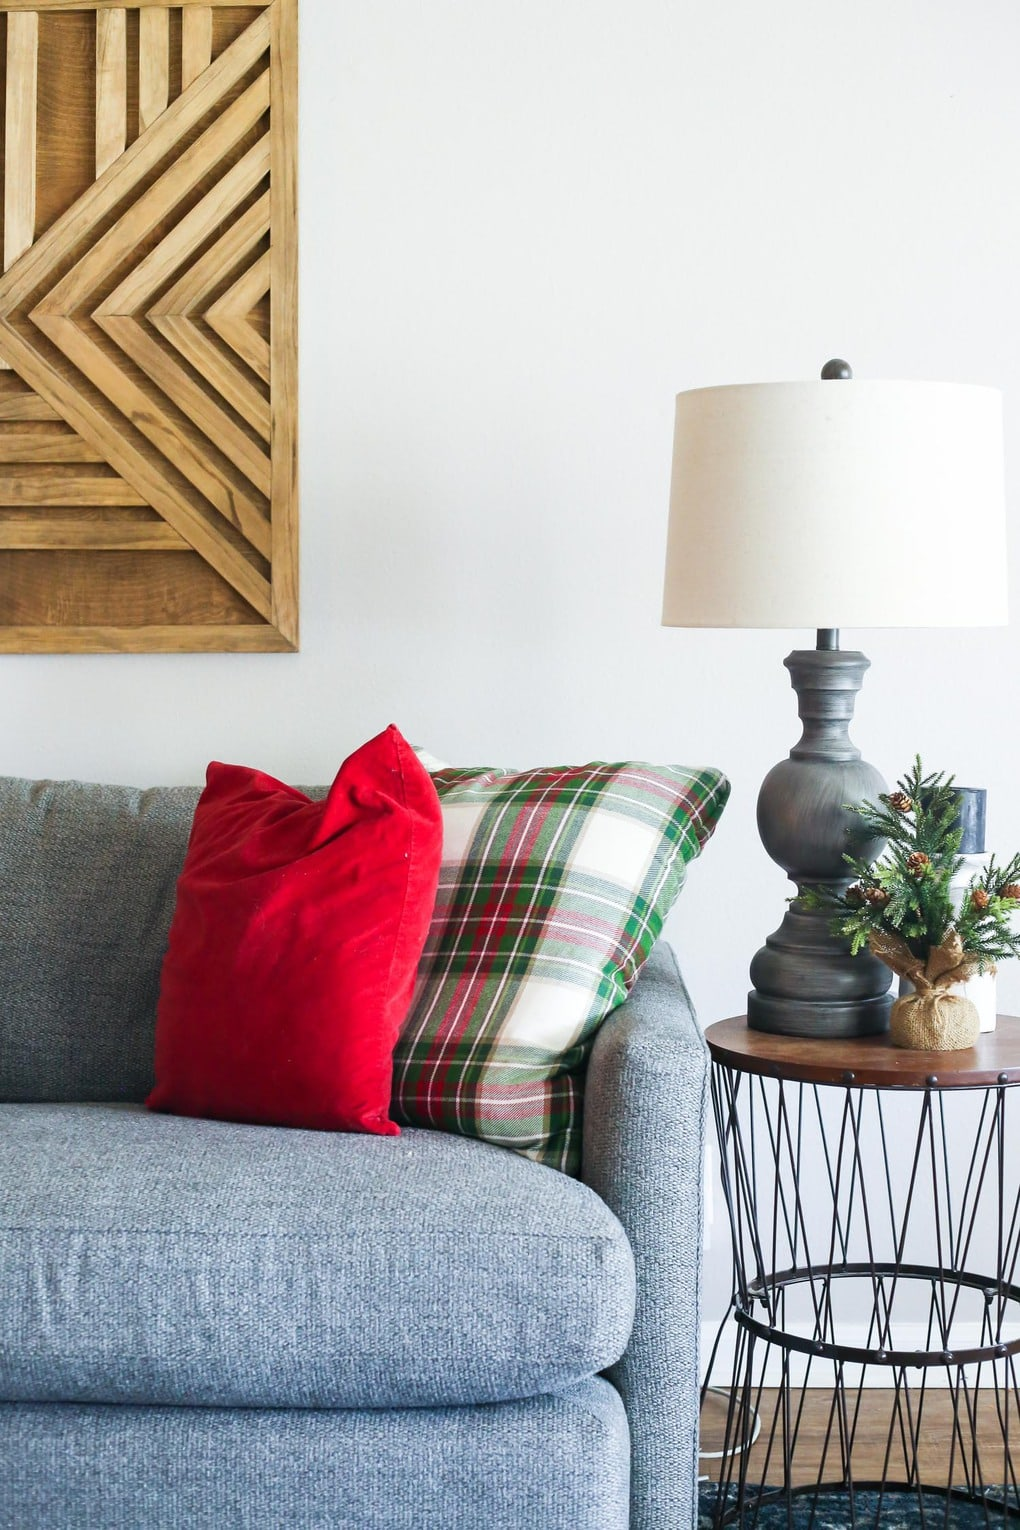 Our Big Comfy Couch: A Crate & Barrel Lounge II Sofa Review